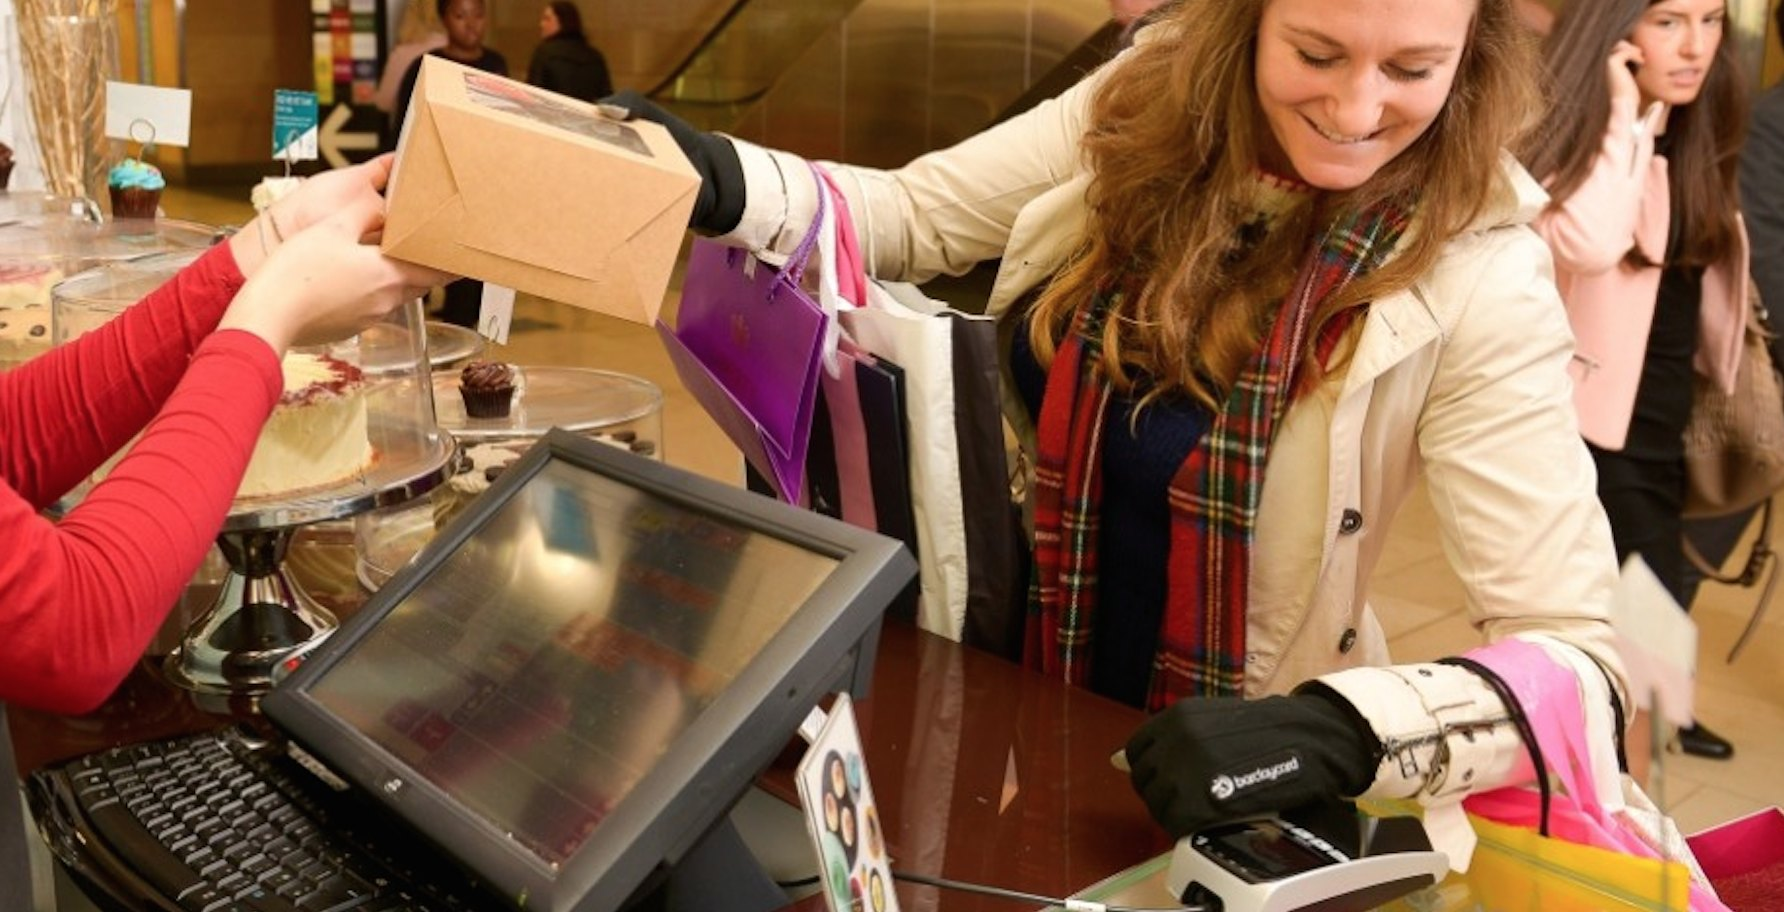 How A Contactless Glove Lets Shoppers Wave And Pay